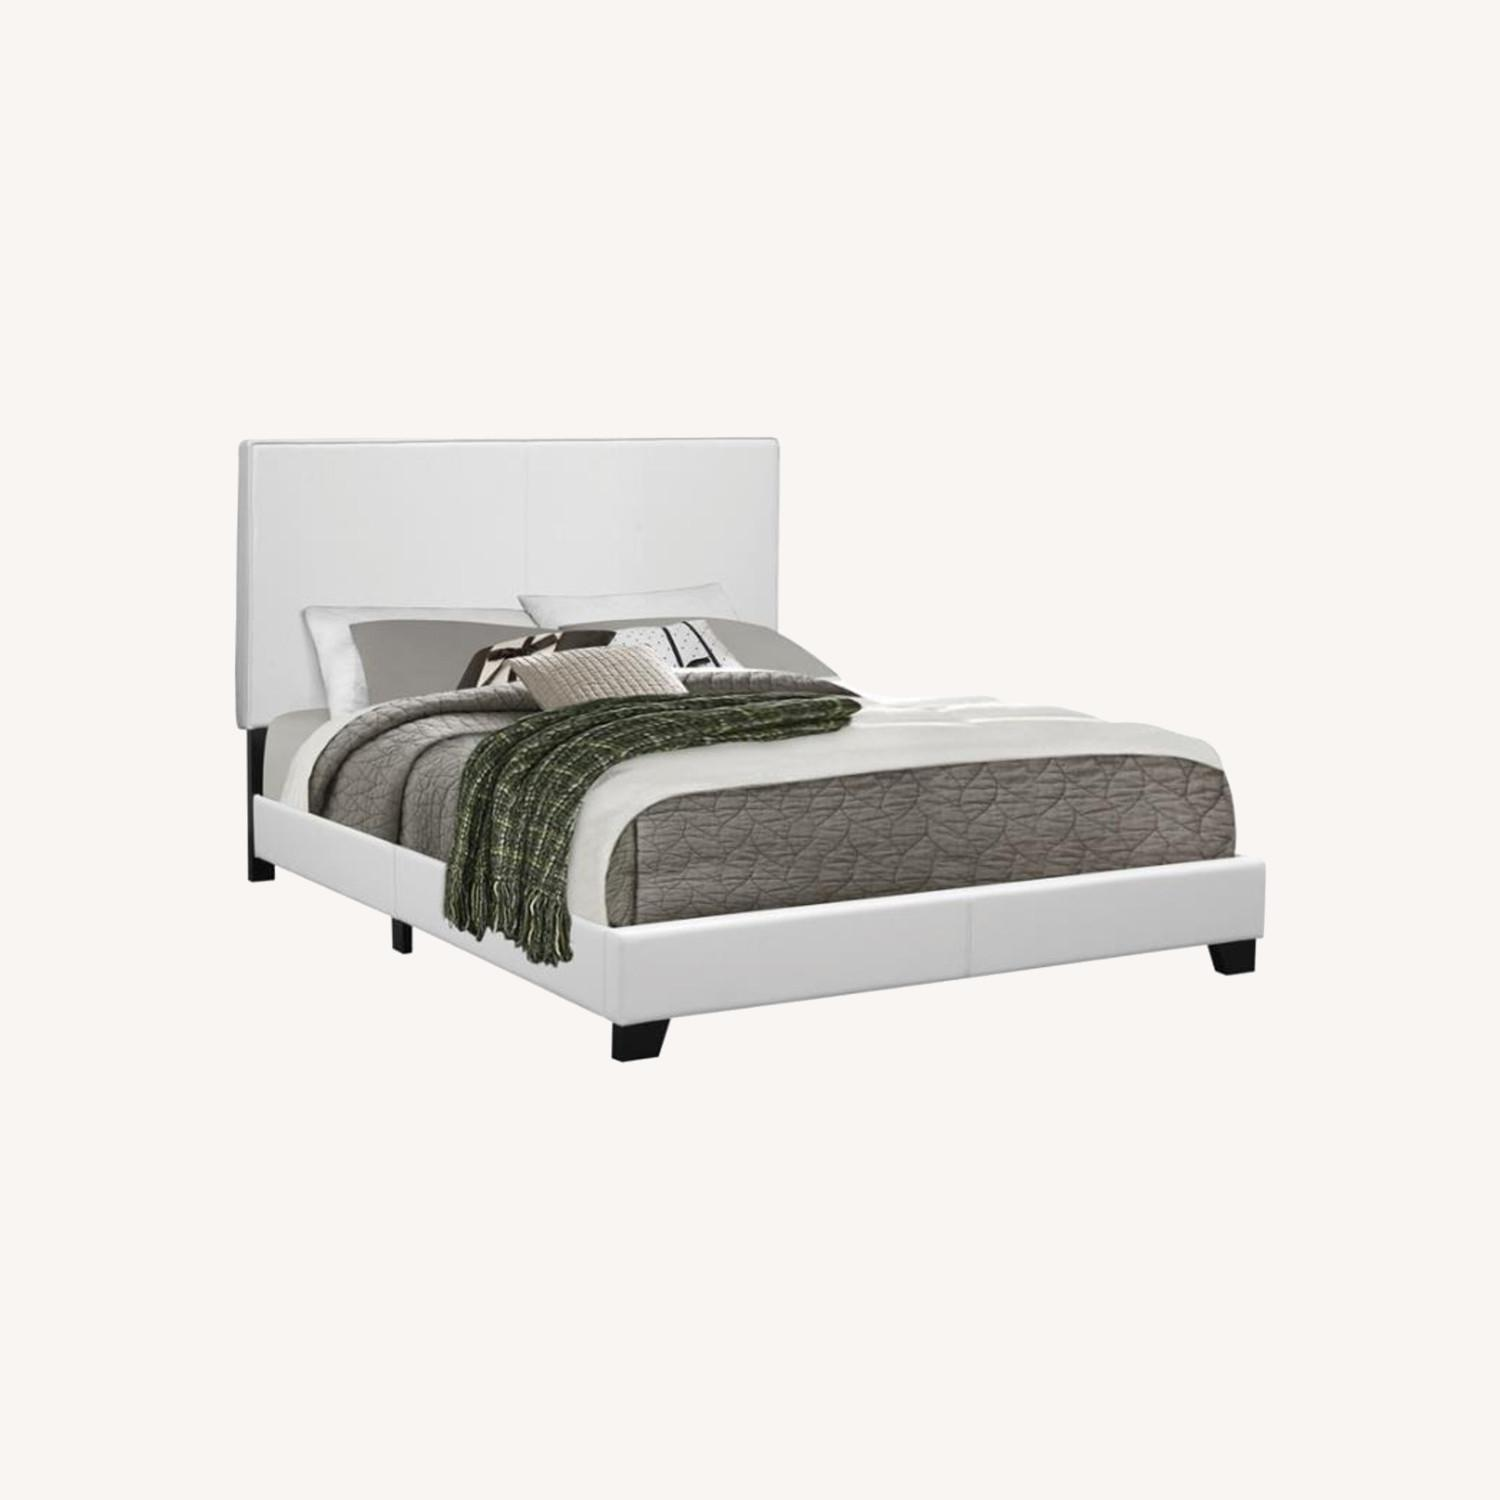 Modern Twin Bed Upholstered In White Leatherette - image-3